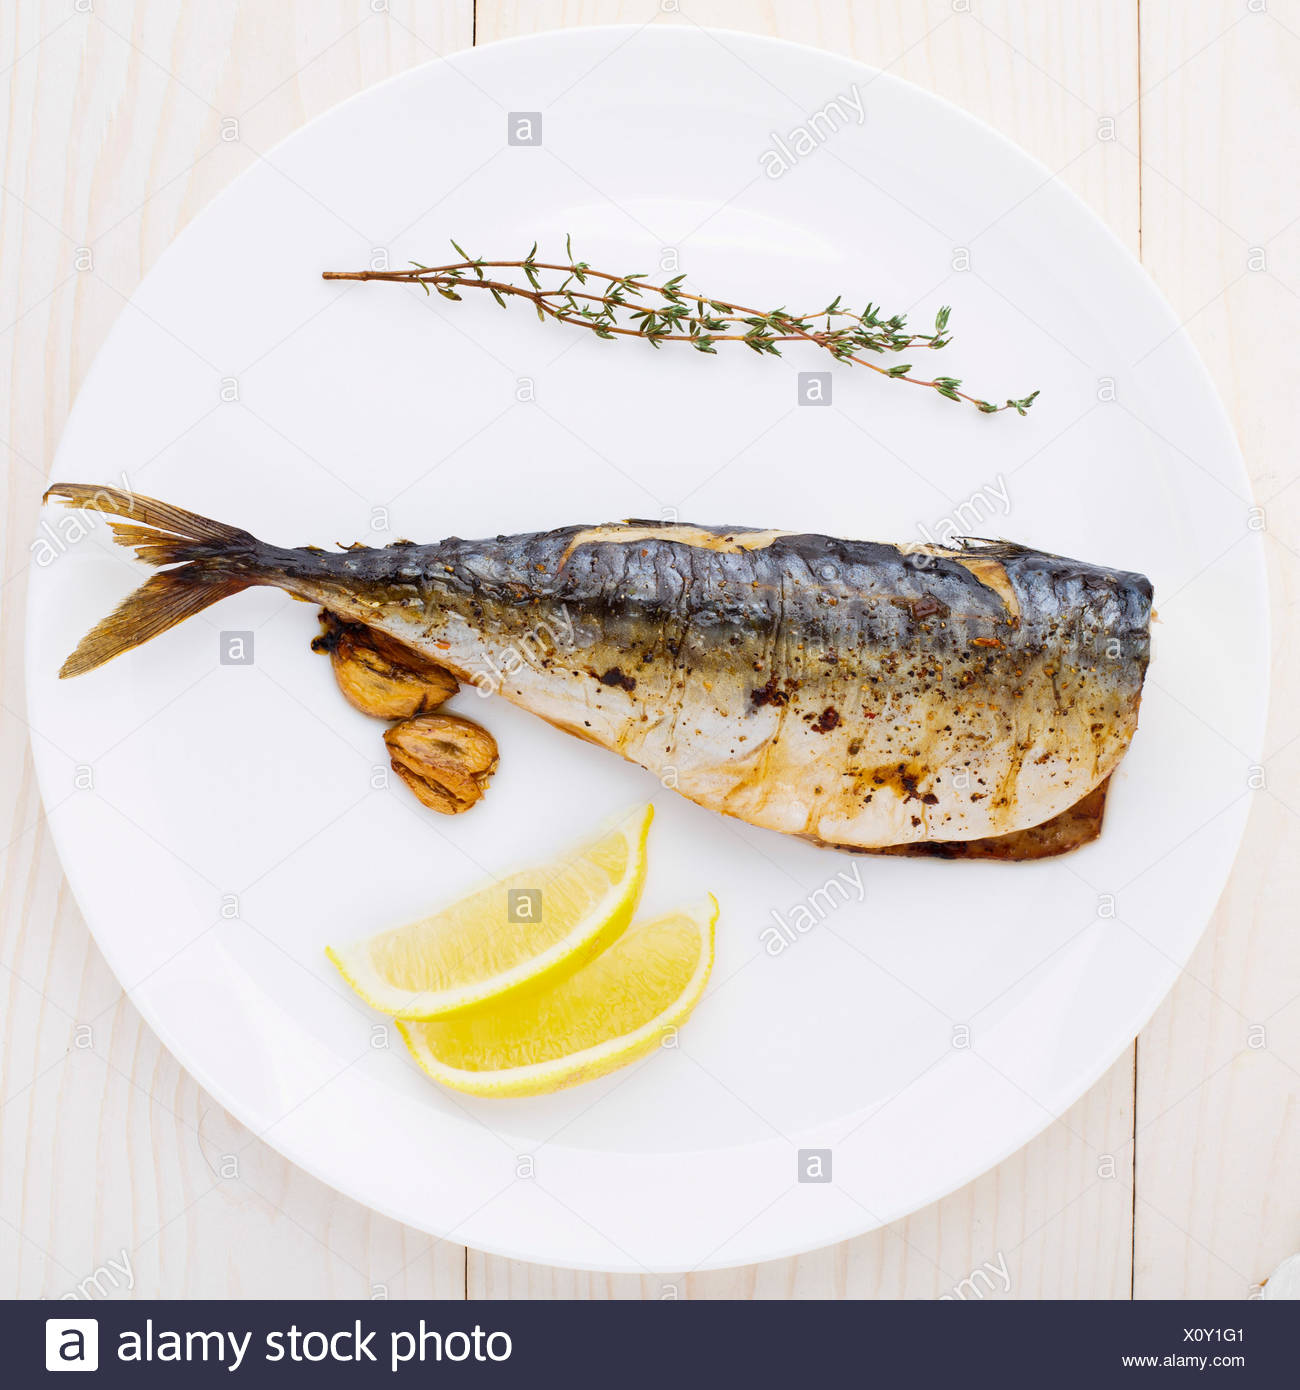 Delicious baked mackerel on a white plate - Stock Image